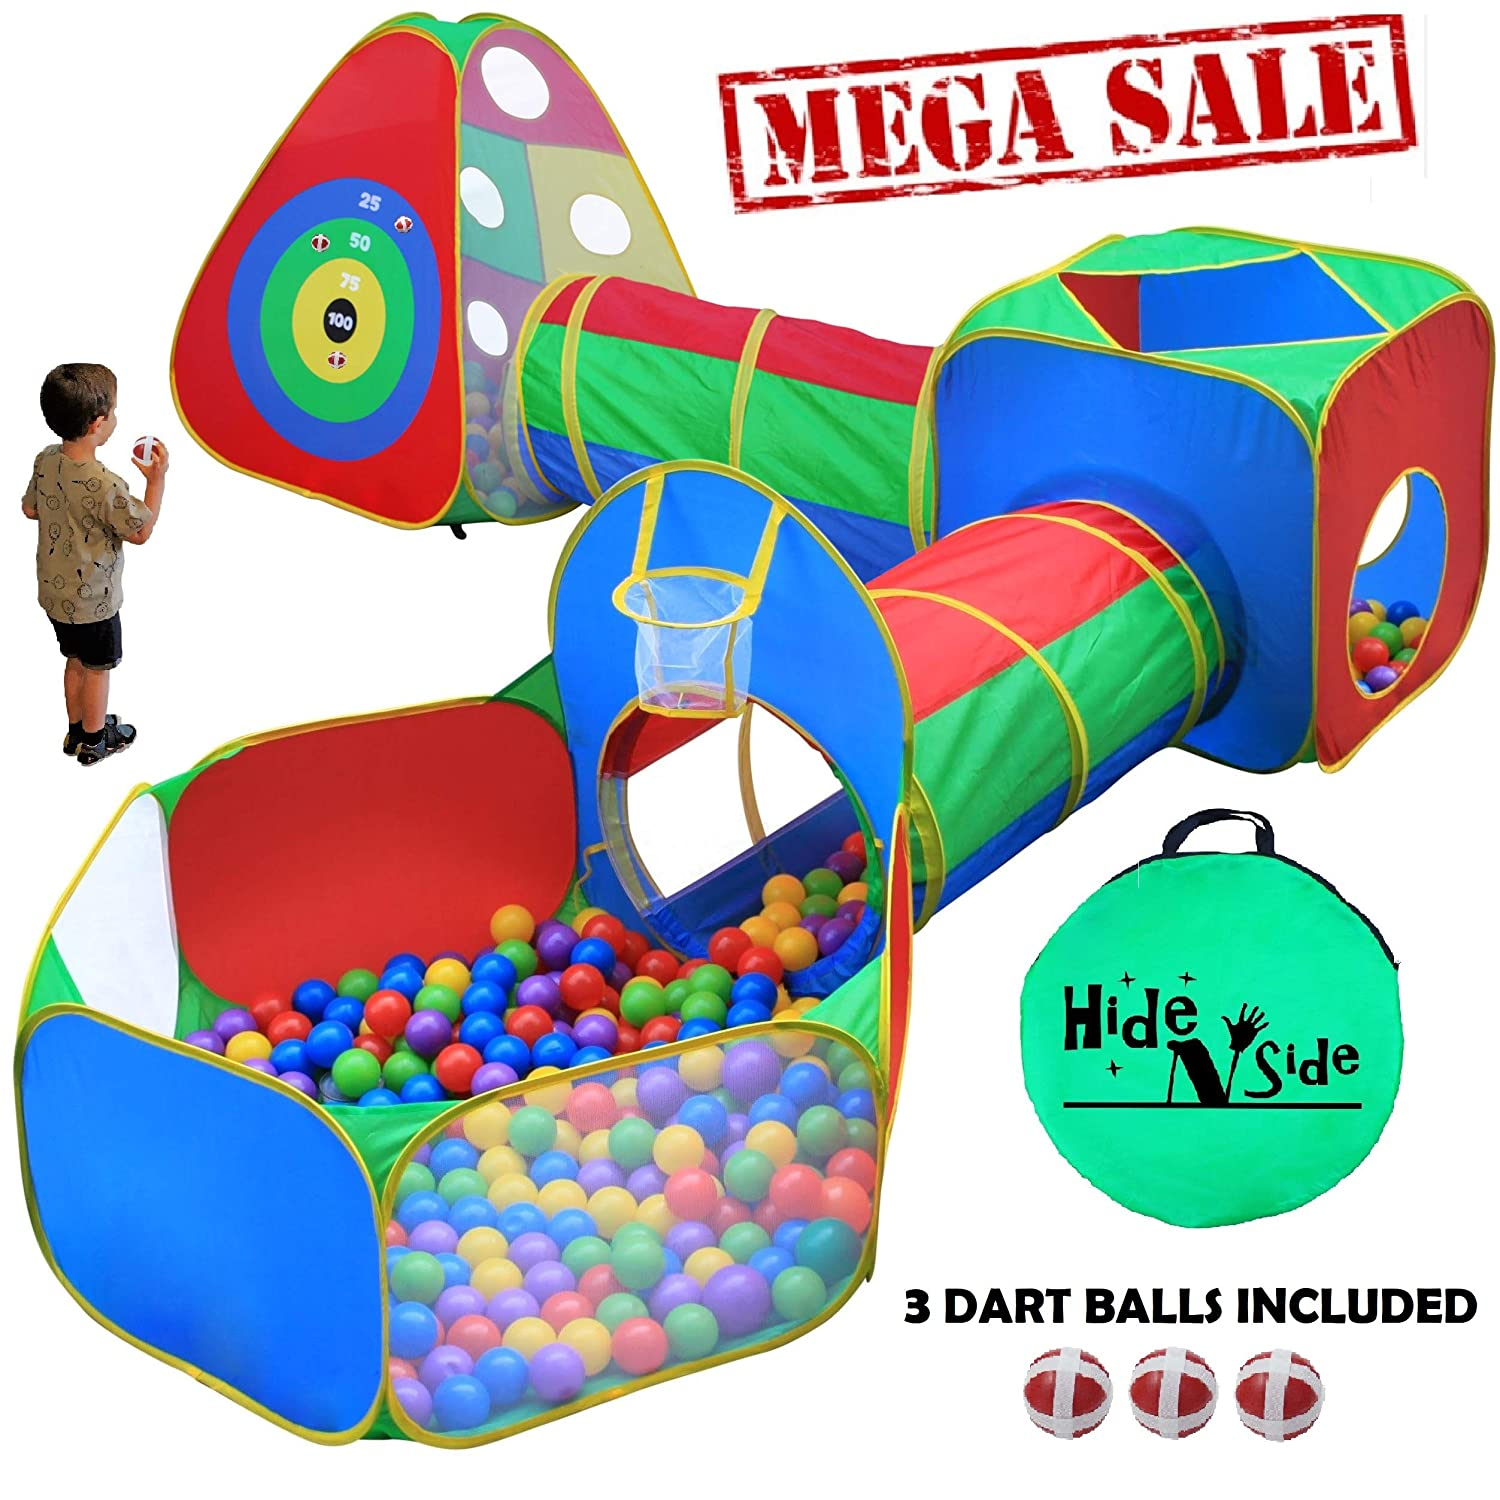 5pc Kids Ball Pit Tents and Tunnels, Toddler Jungle Gym Play Tent with Play Crawl Tunnel Toy , for Boys babies infants Children, w/ Basketball Hoop, Indoor & Outdoor, Dart Wall Game w/ 3 Dart Balls Hide-n-Side